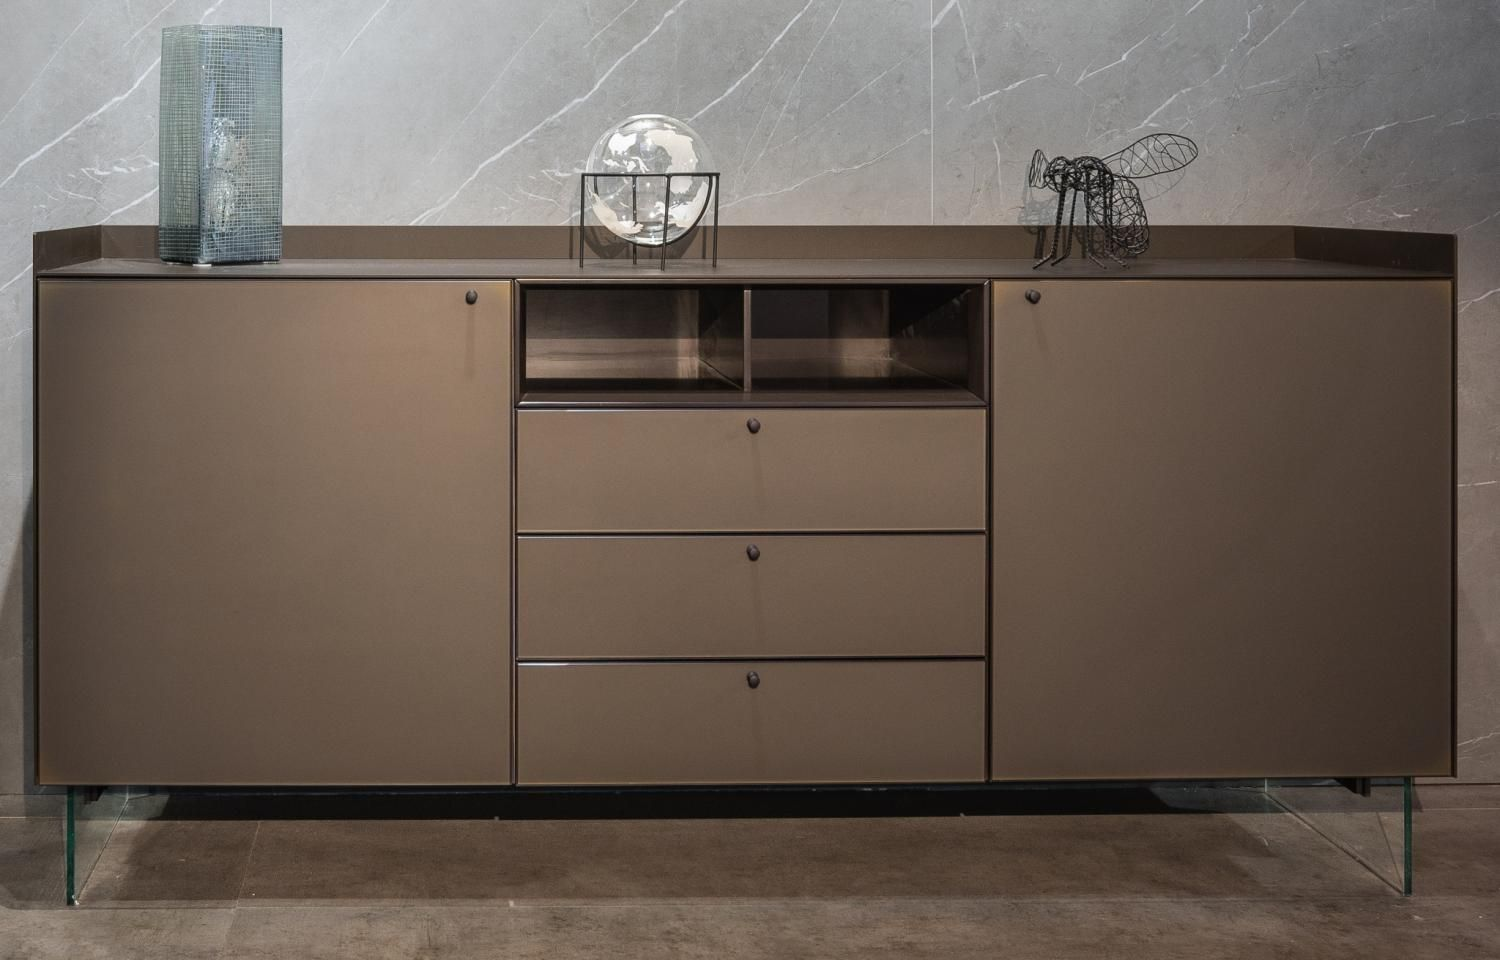 Cabinet STEK. Aluminum profile Dark Brown Matt Color. The facade of the Rim, glass Colour Matt 07. Table top and sides Champagne Satin Grey. Dark Brown Matt Color niche. Grey Trasparent shelves. Thuja Scuro interior filling. The legs are made of glass.